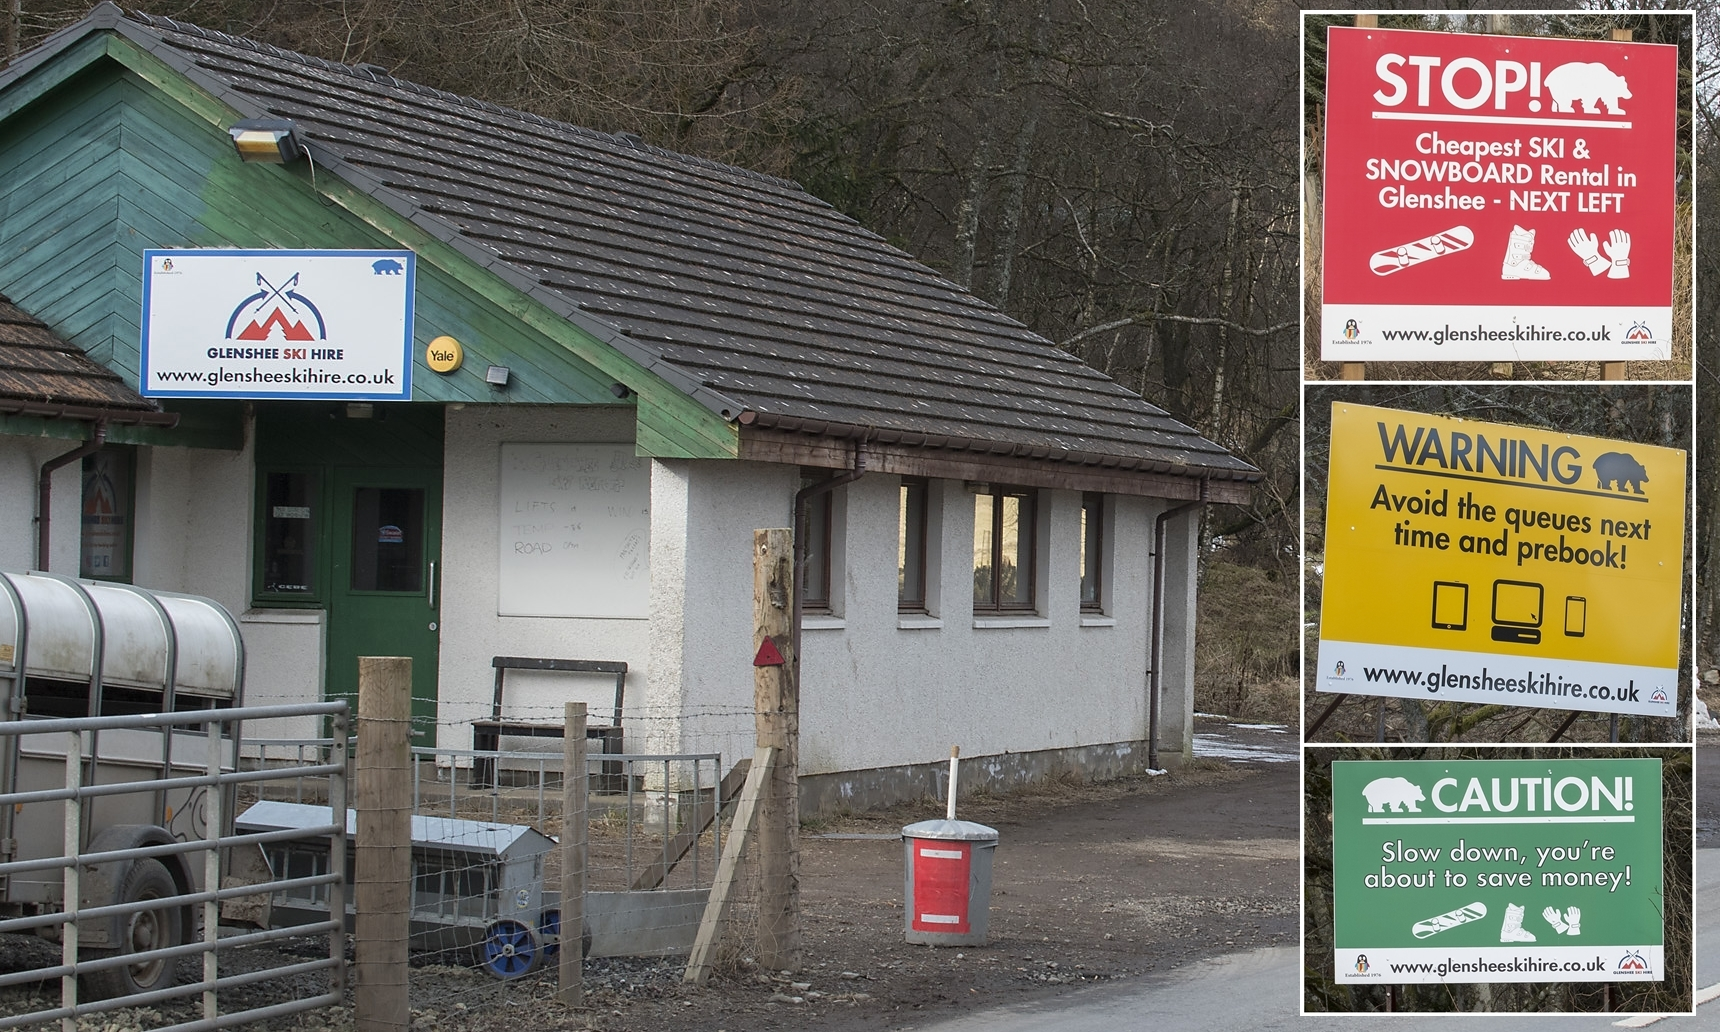 The ski hire shop and (inset right) the three billboards.